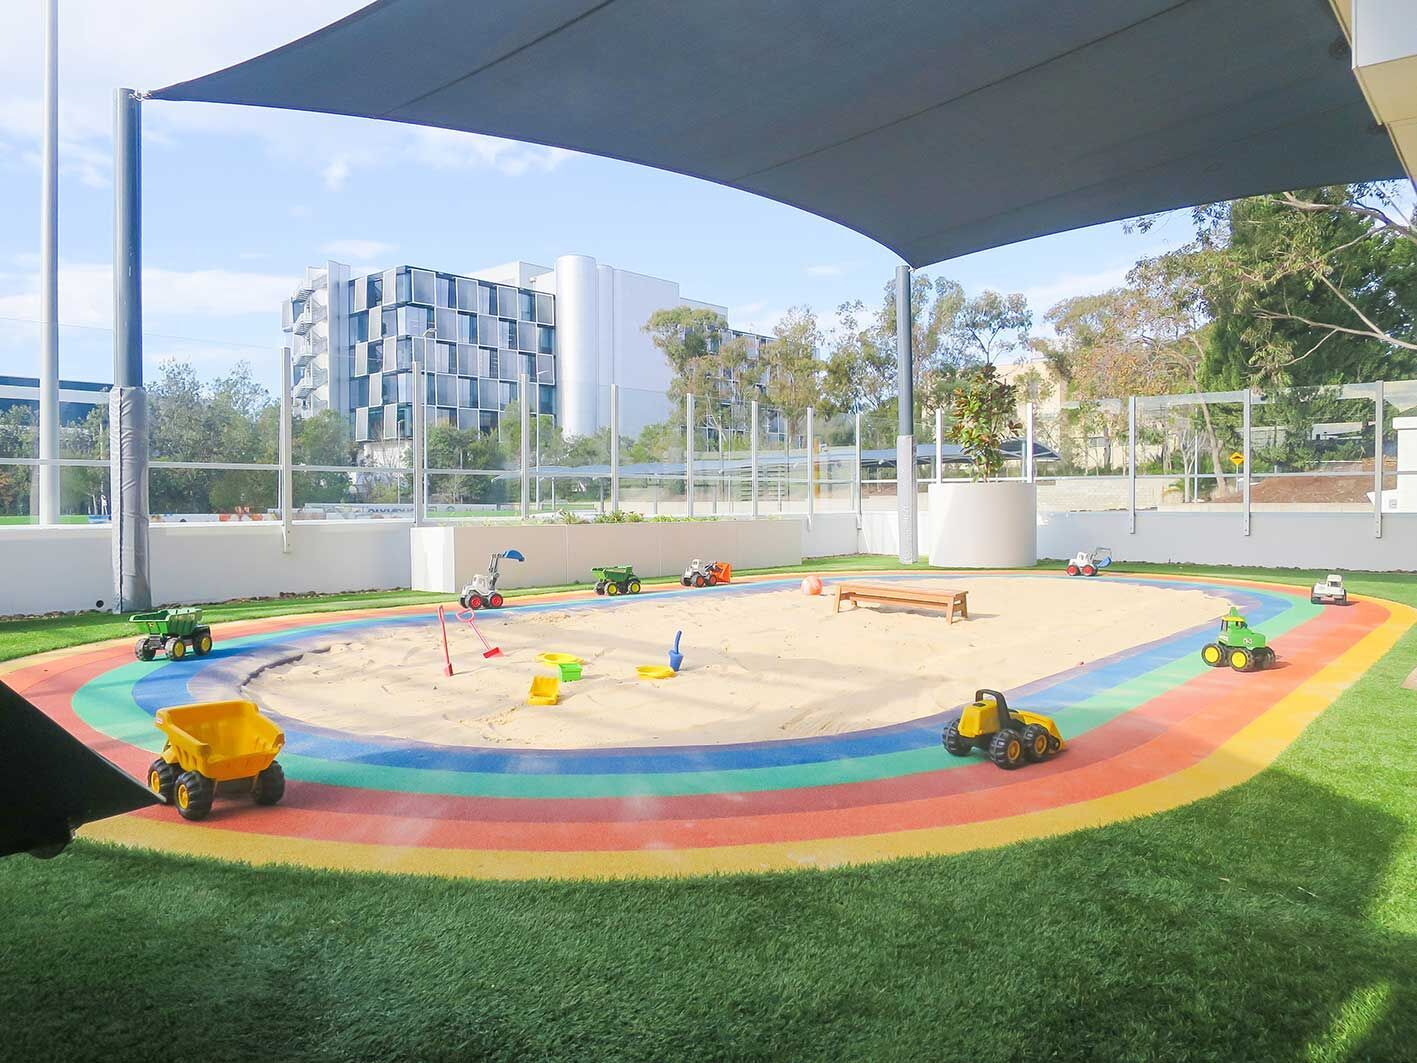 RDM Visits: Greenwood Early Education Centre, North Ryde